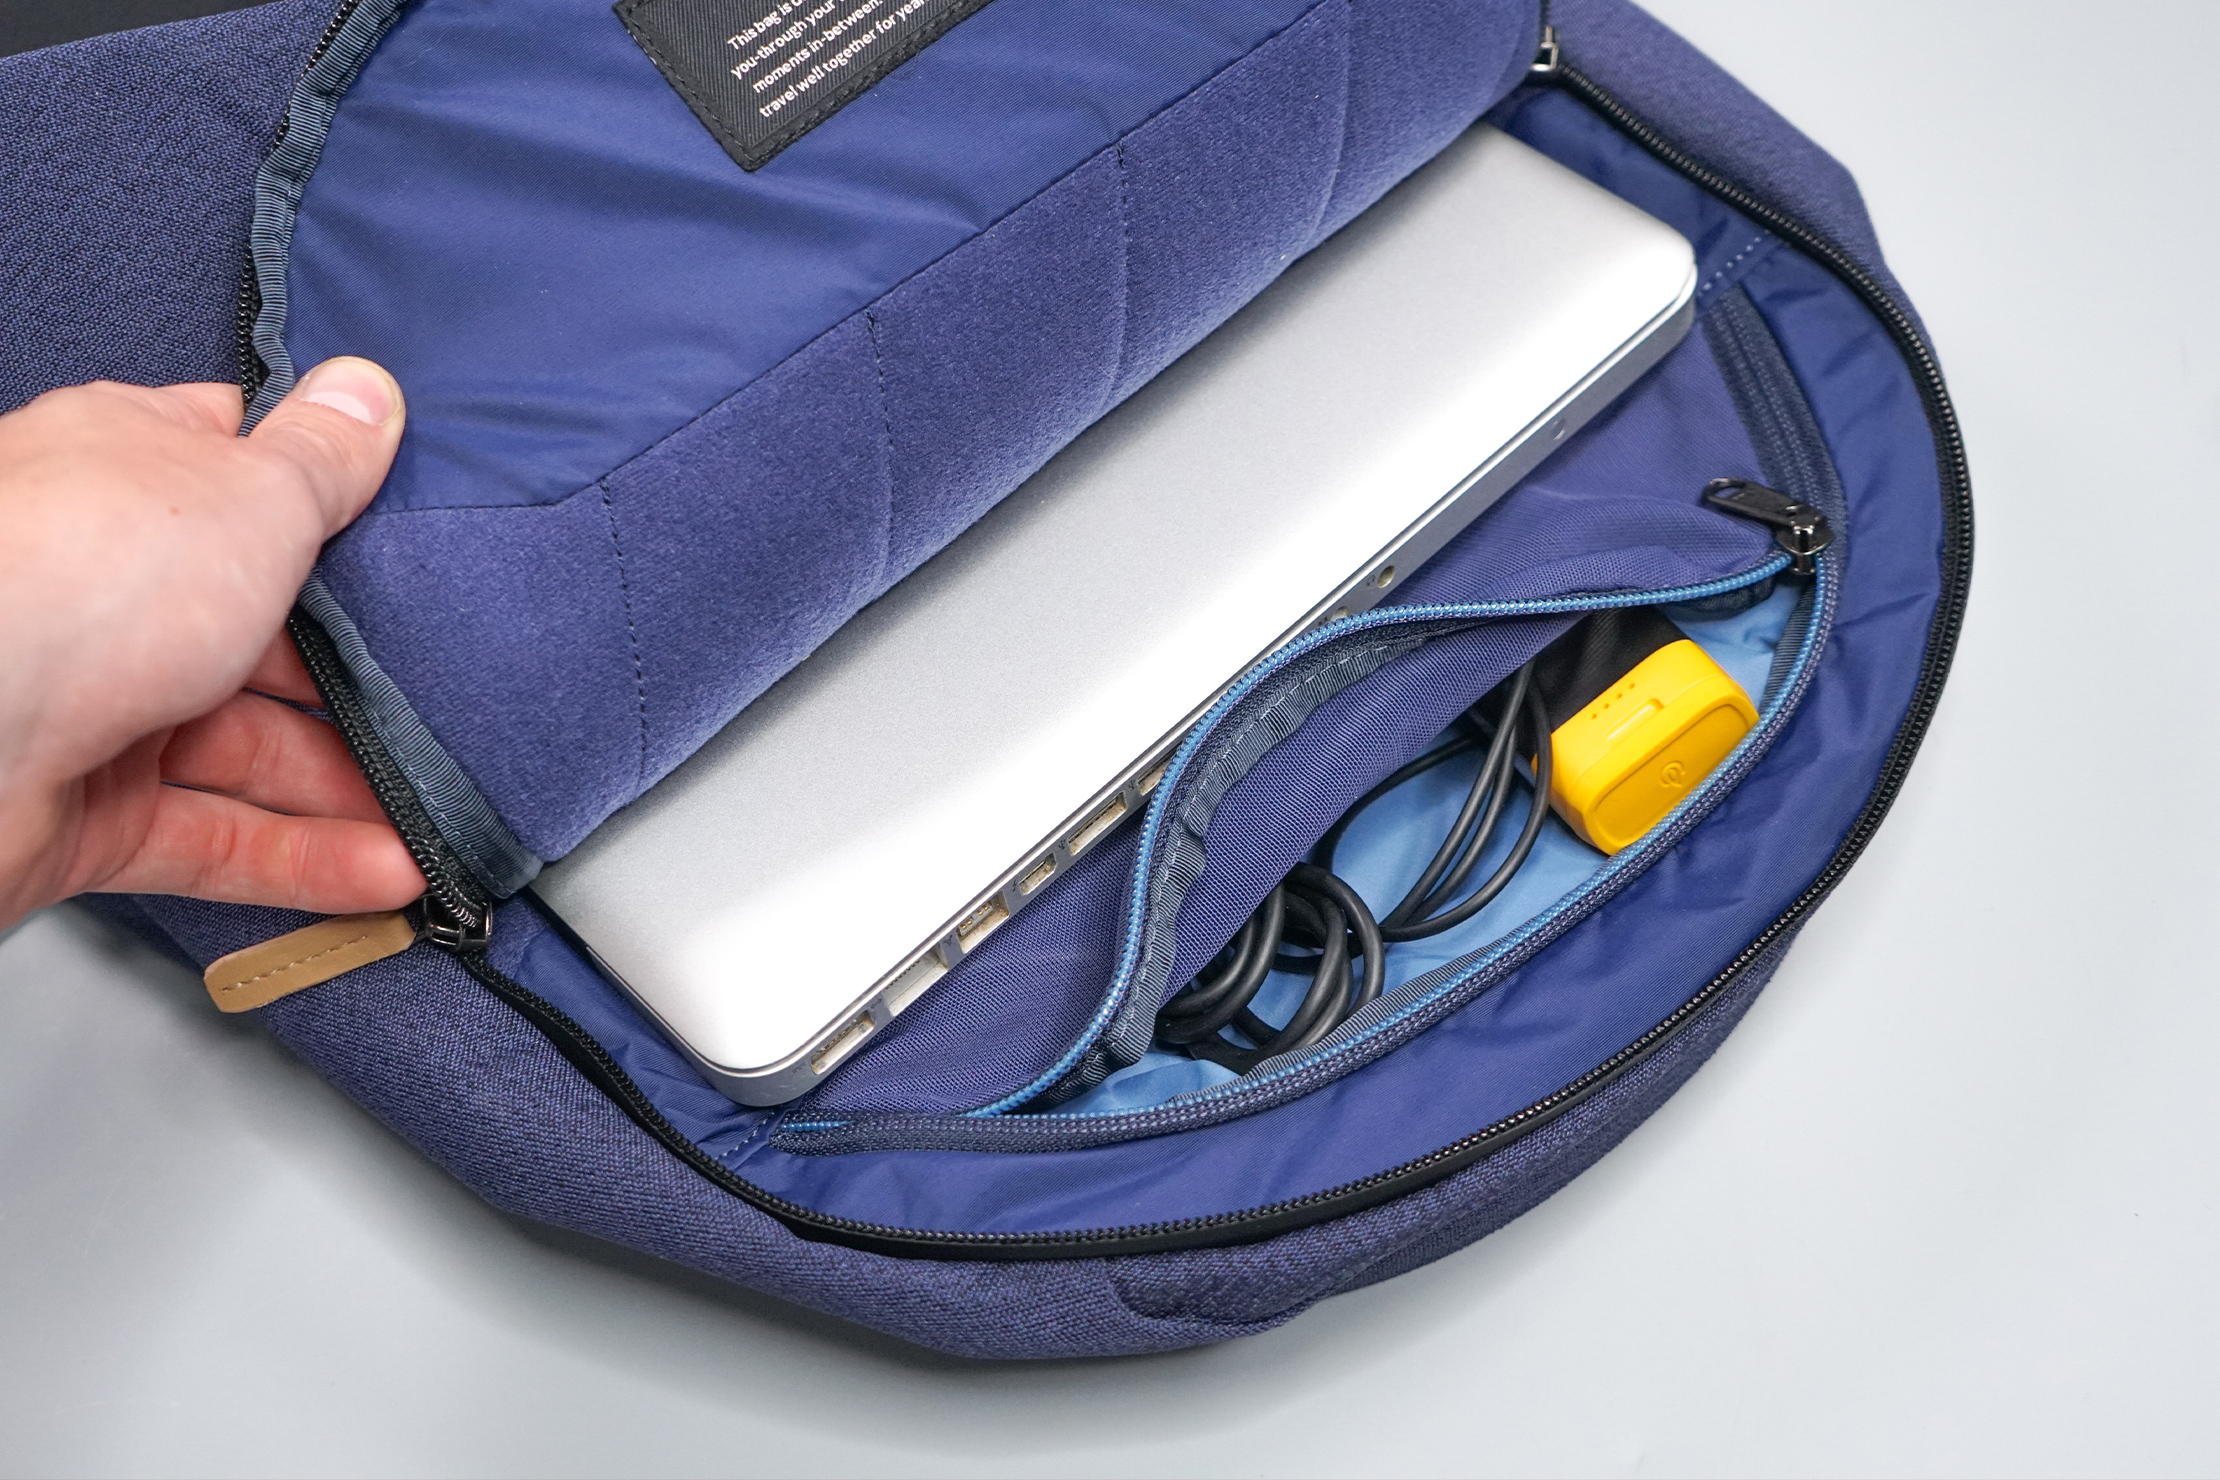 Bellroy Classic Backpack Plus Laptop Compartment